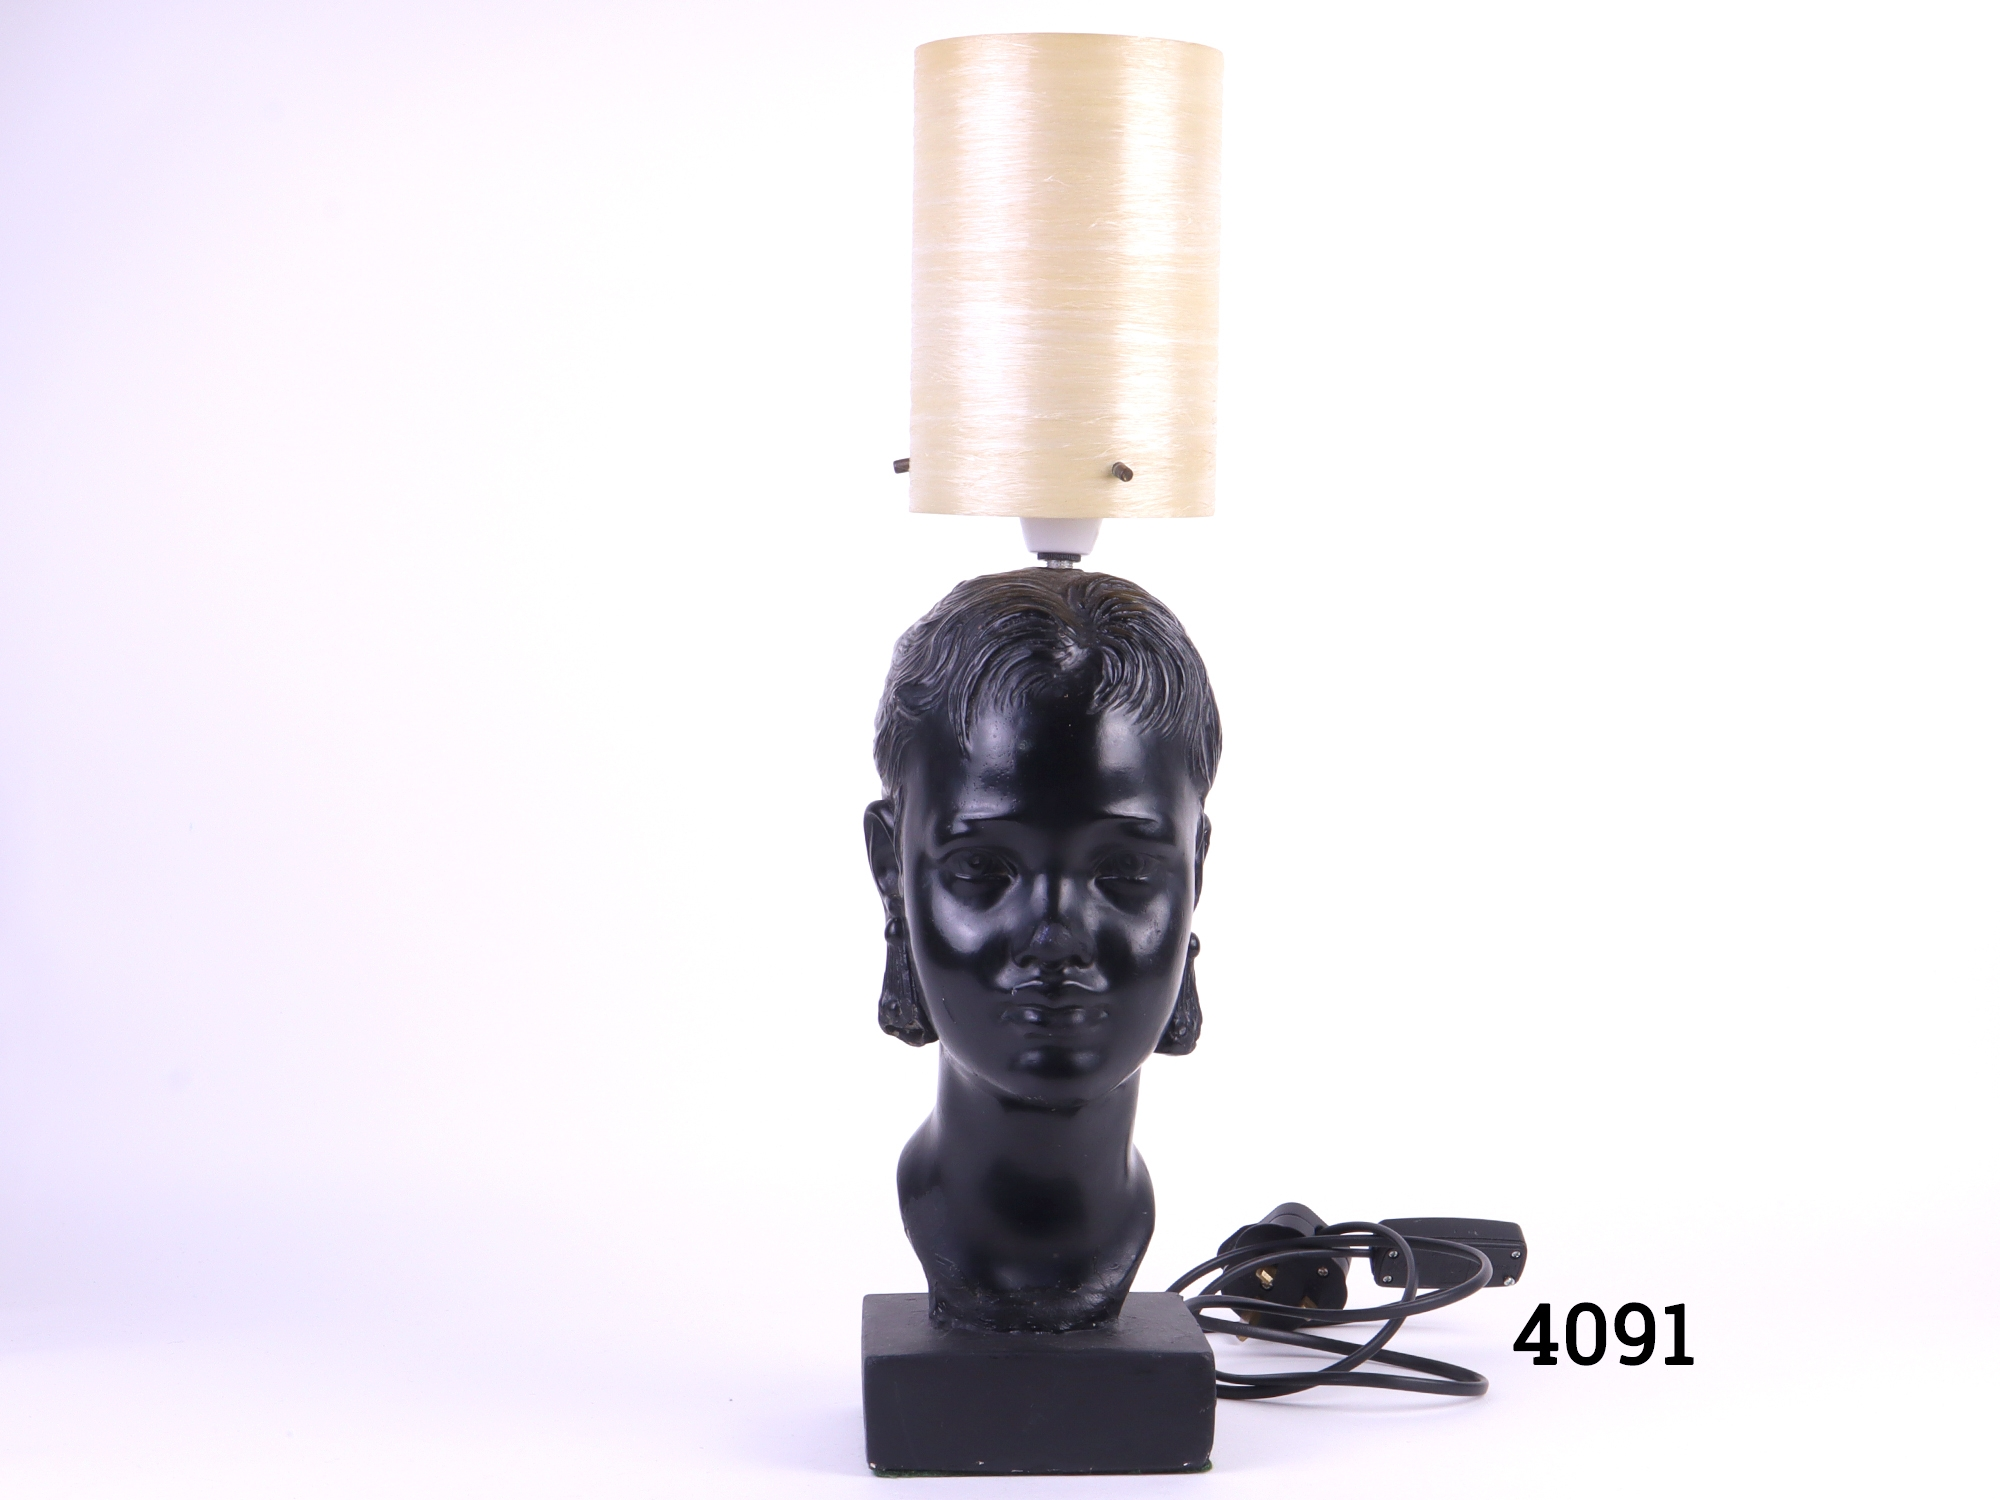 1950s-60s lamp with a ladys head at the base and fibre glass shade Initialled & numbered and bottom of the base Main photo showing front view of the whole lamp with shade